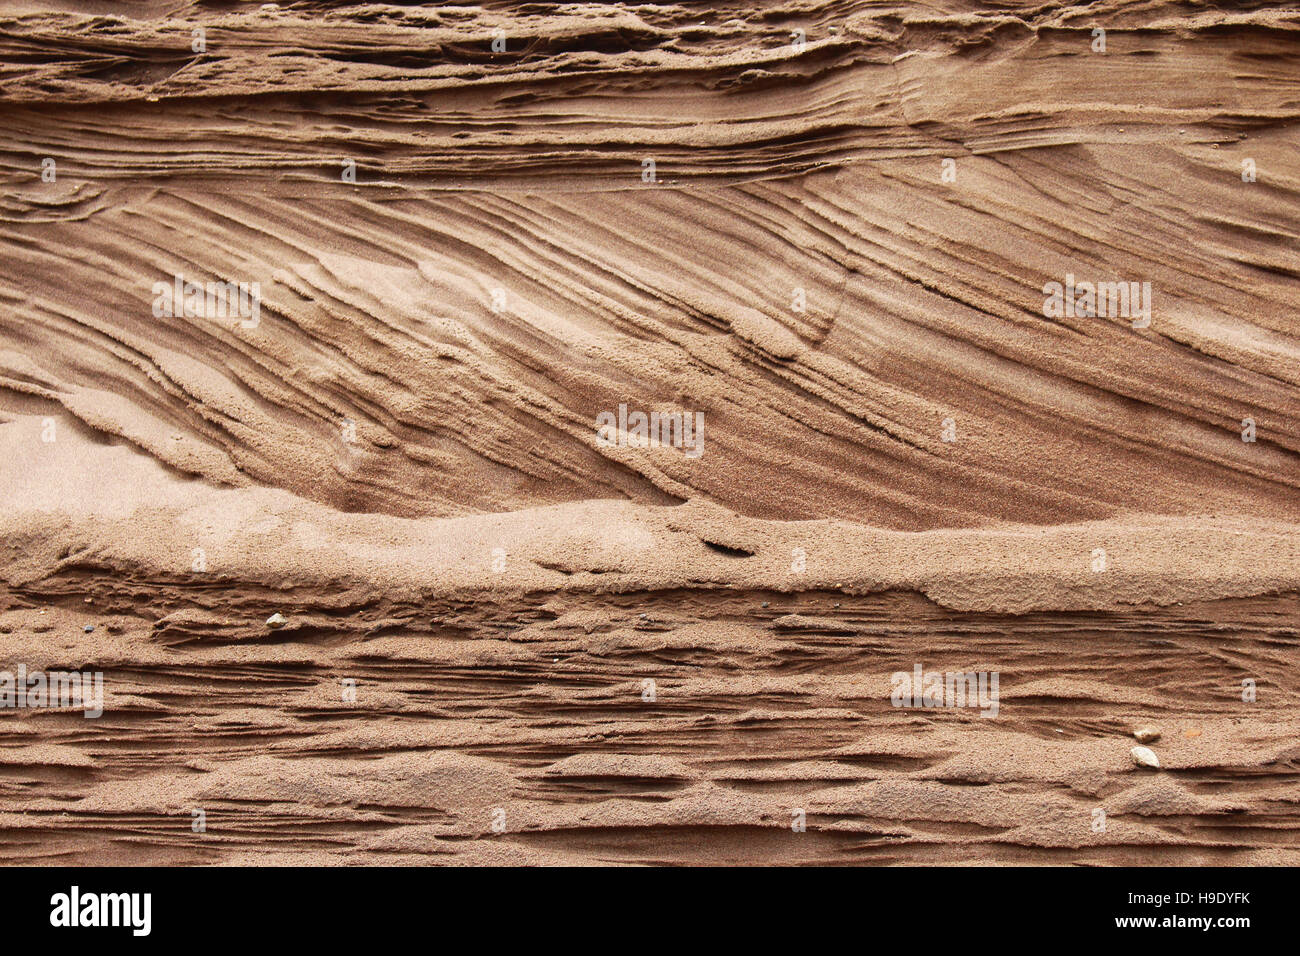 Cross bedding is displayed in this sand embankment at the Great Sand Dunes National Park in Colorado. - Stock Image